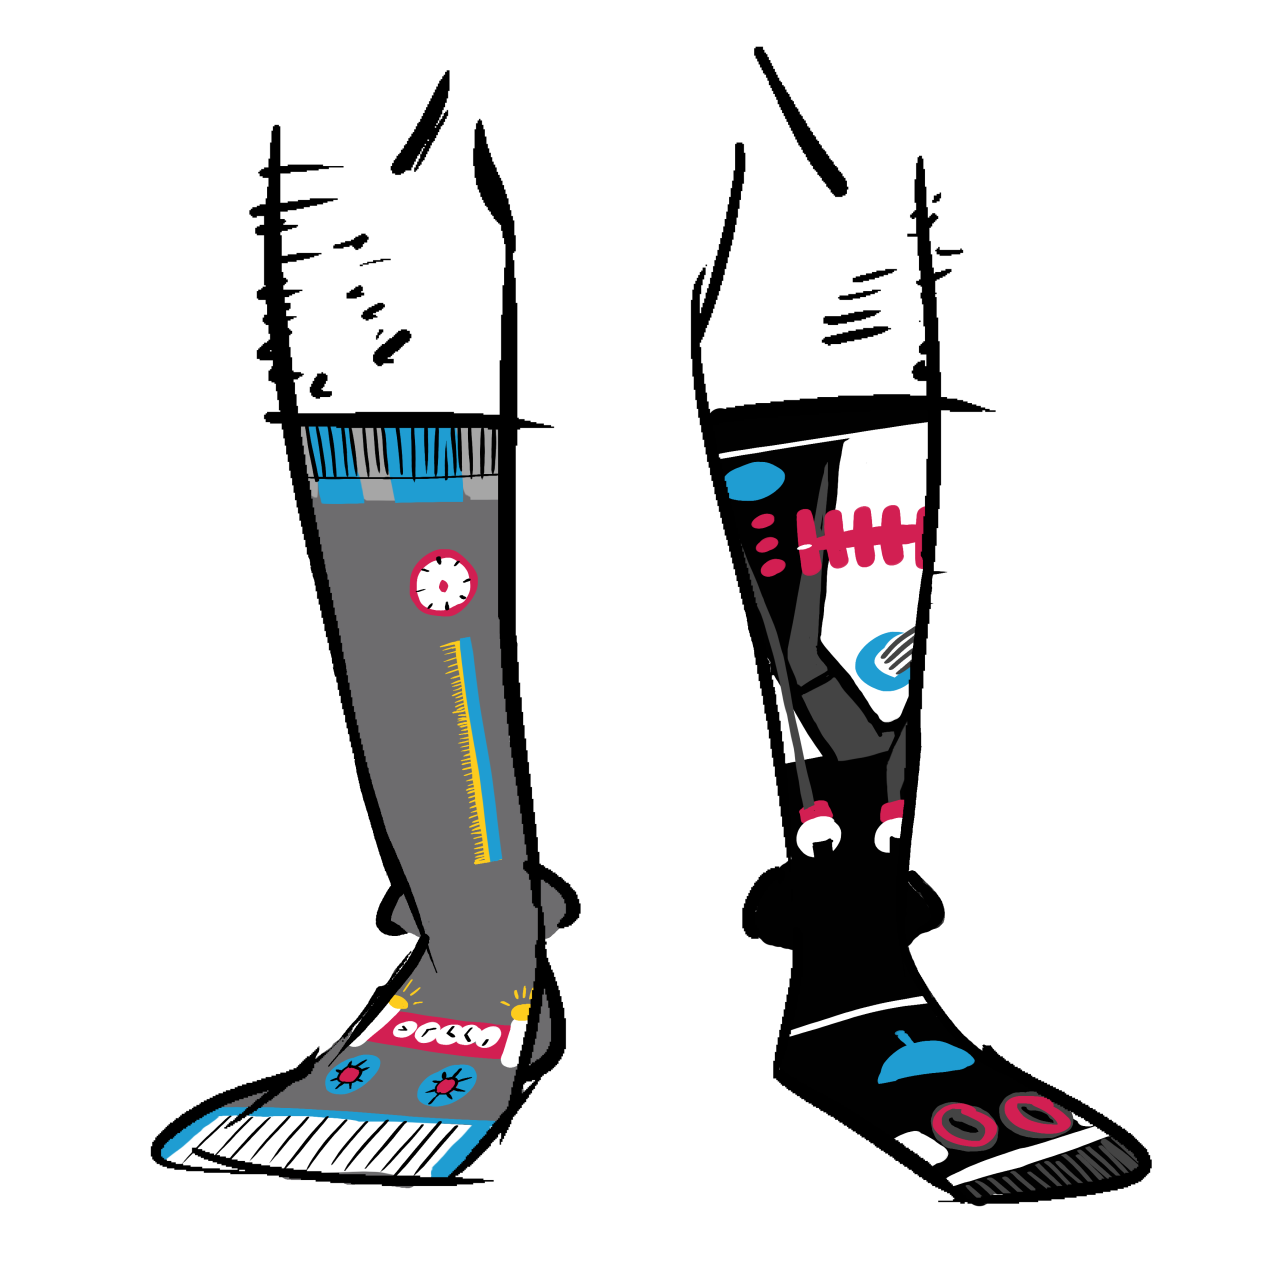 Calf-high socks that have two robots, one grey, one black